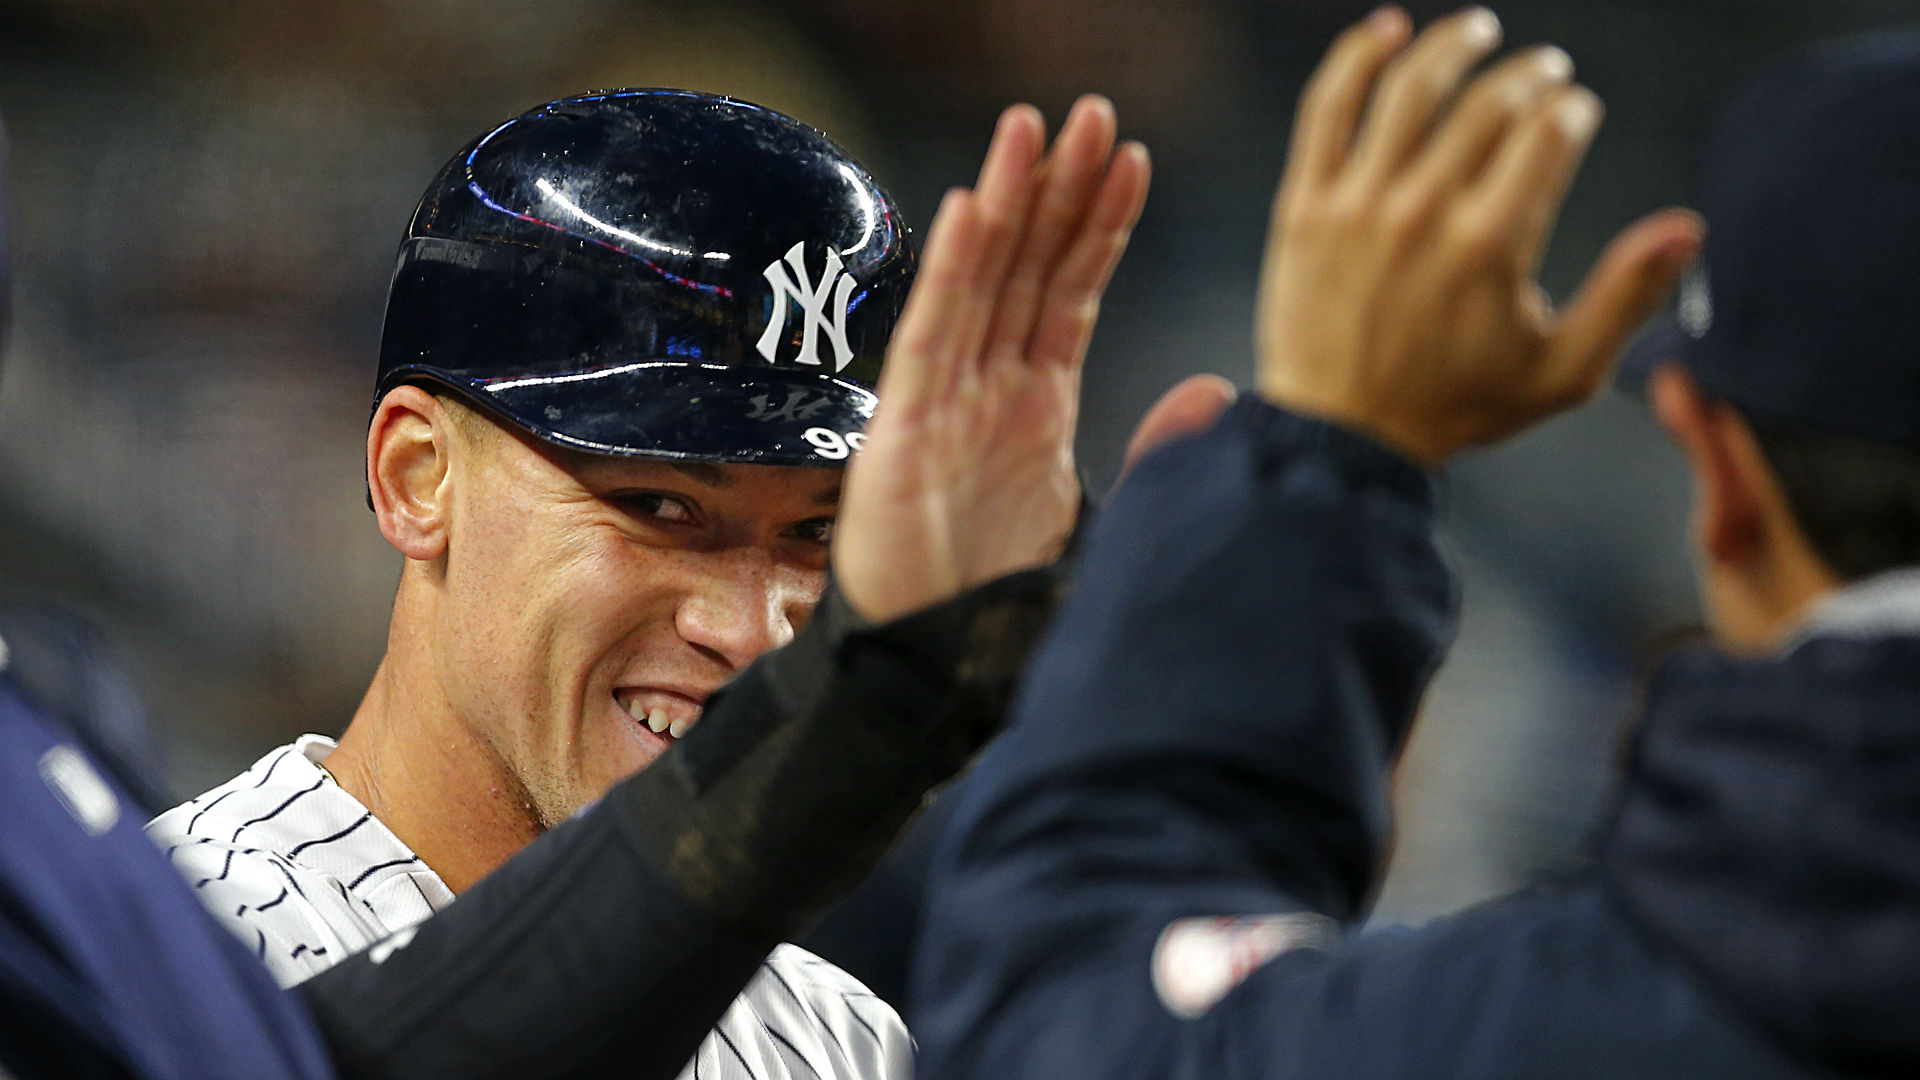 mlb highlights aaron judge unloads monster home run into biggest home runs in baseball history biggest home run ever